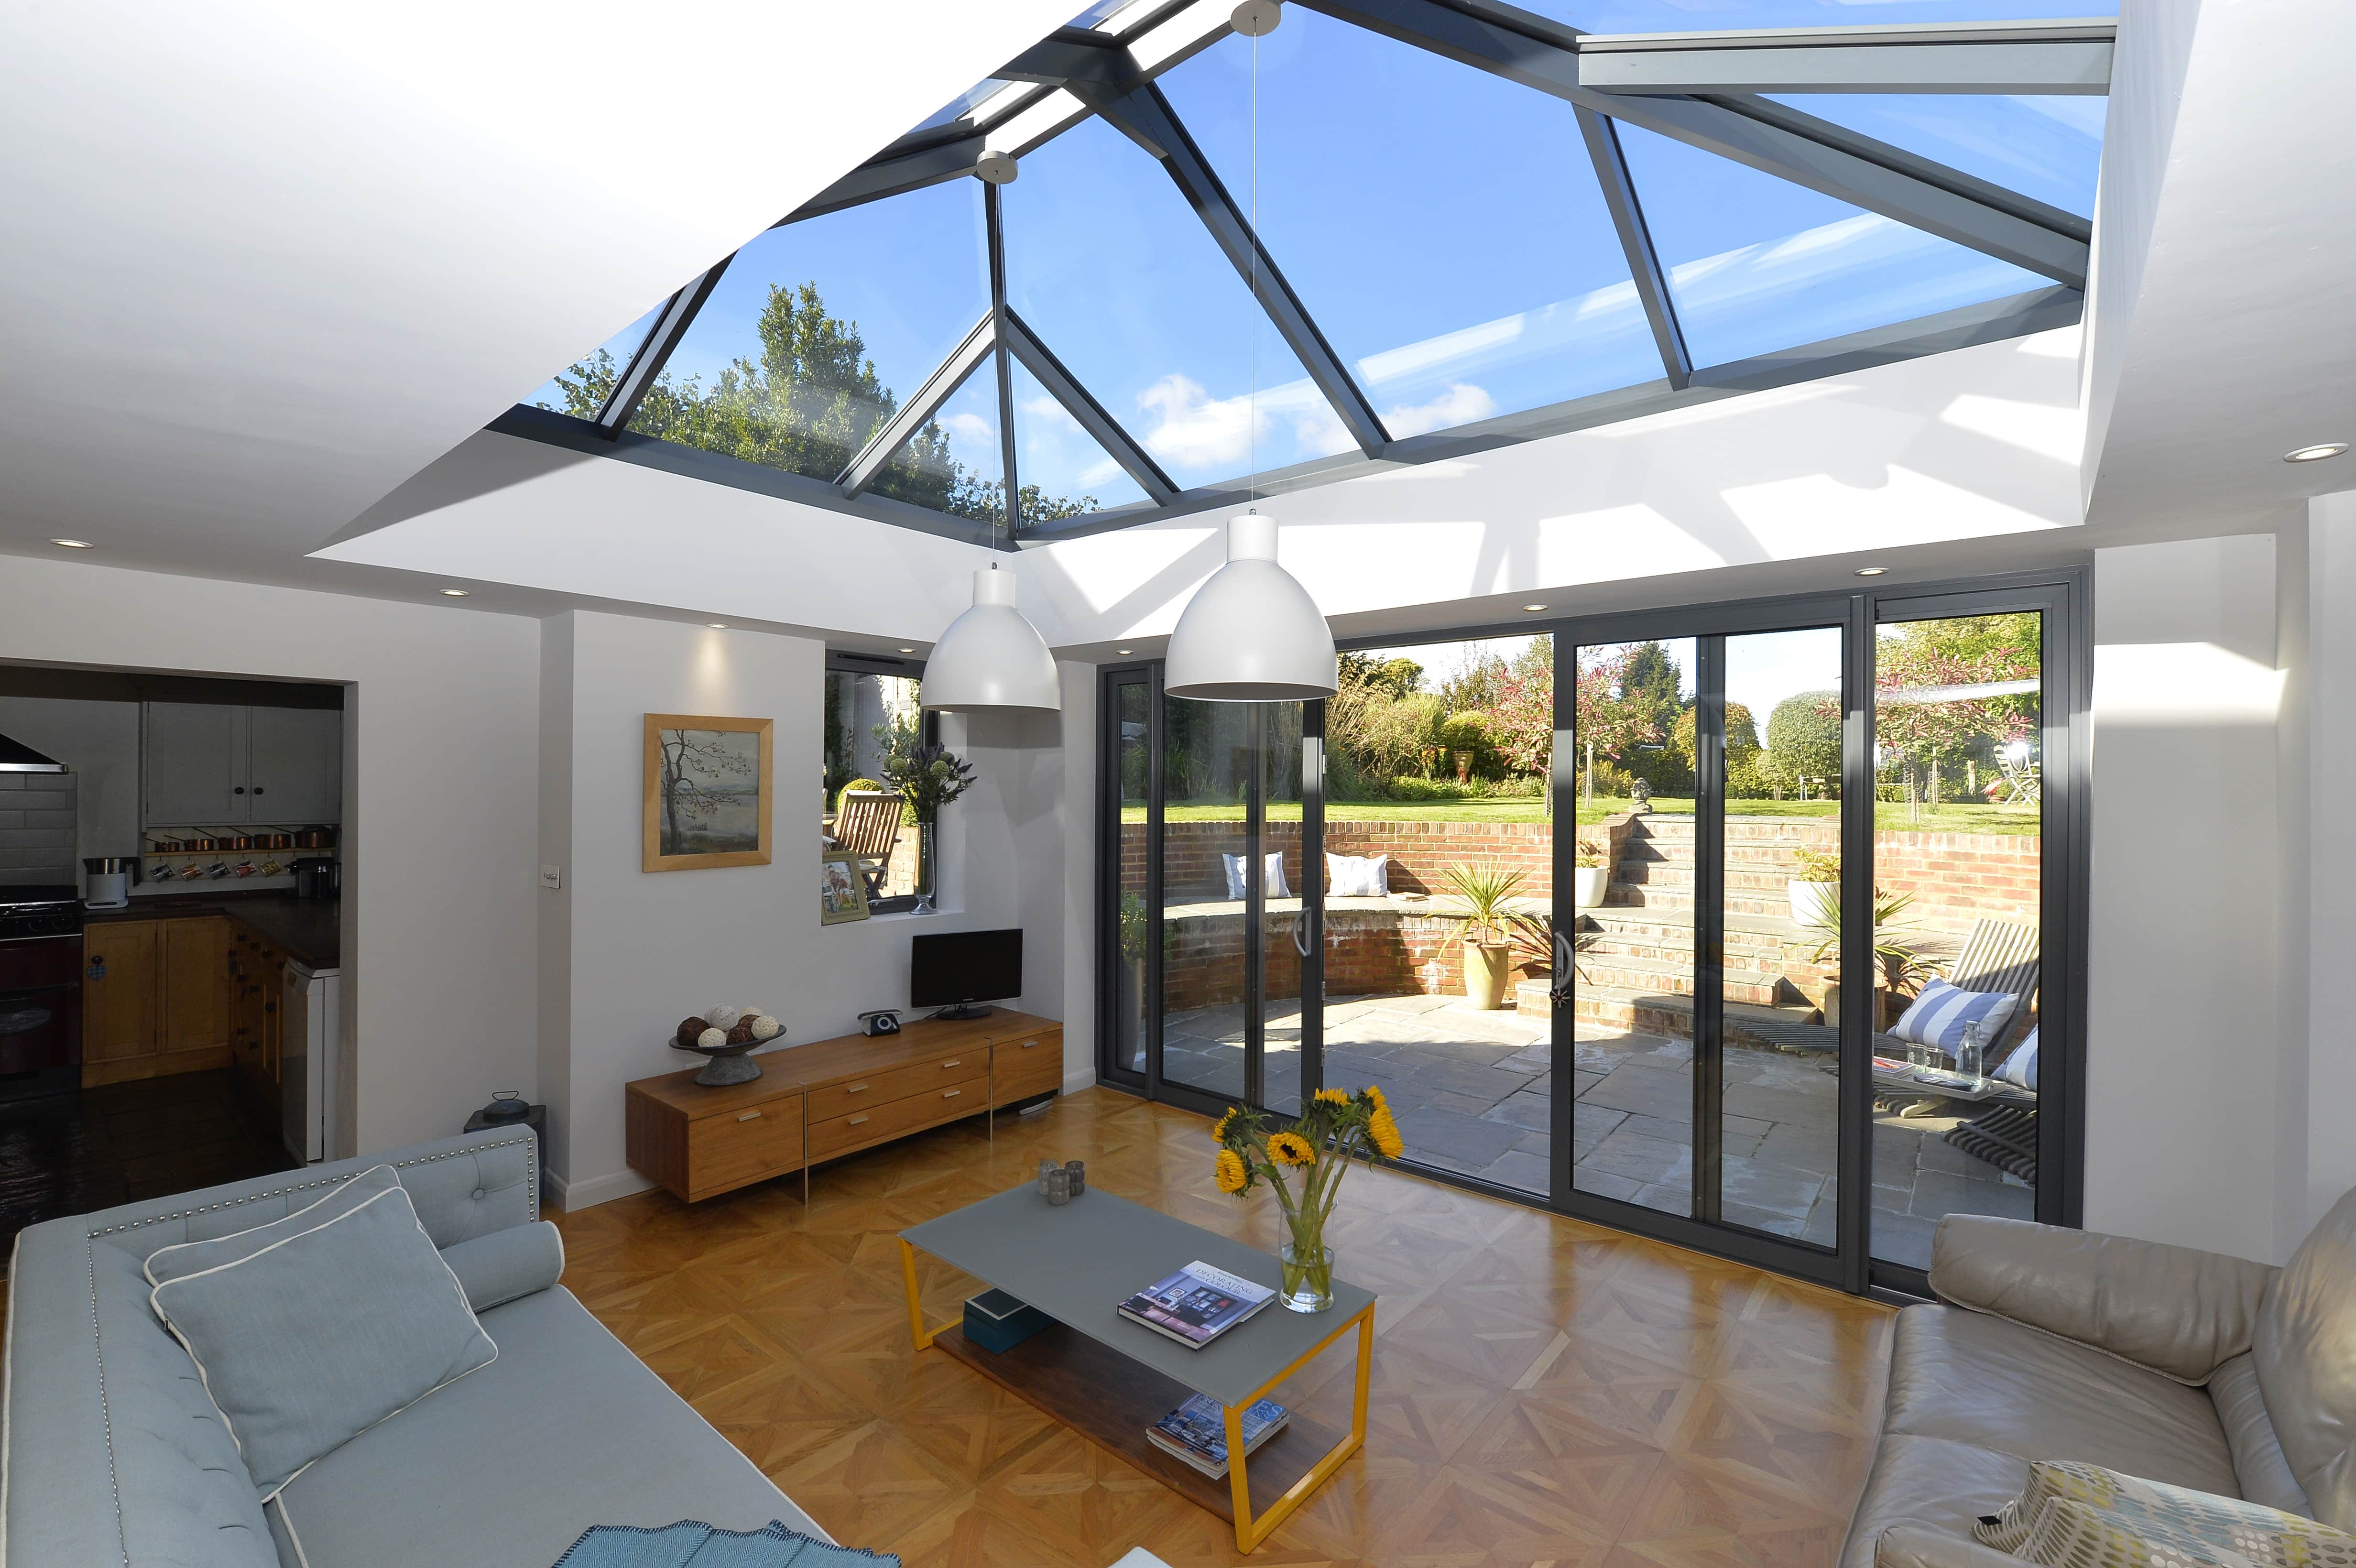 Glass conservatory Roof, Fleet